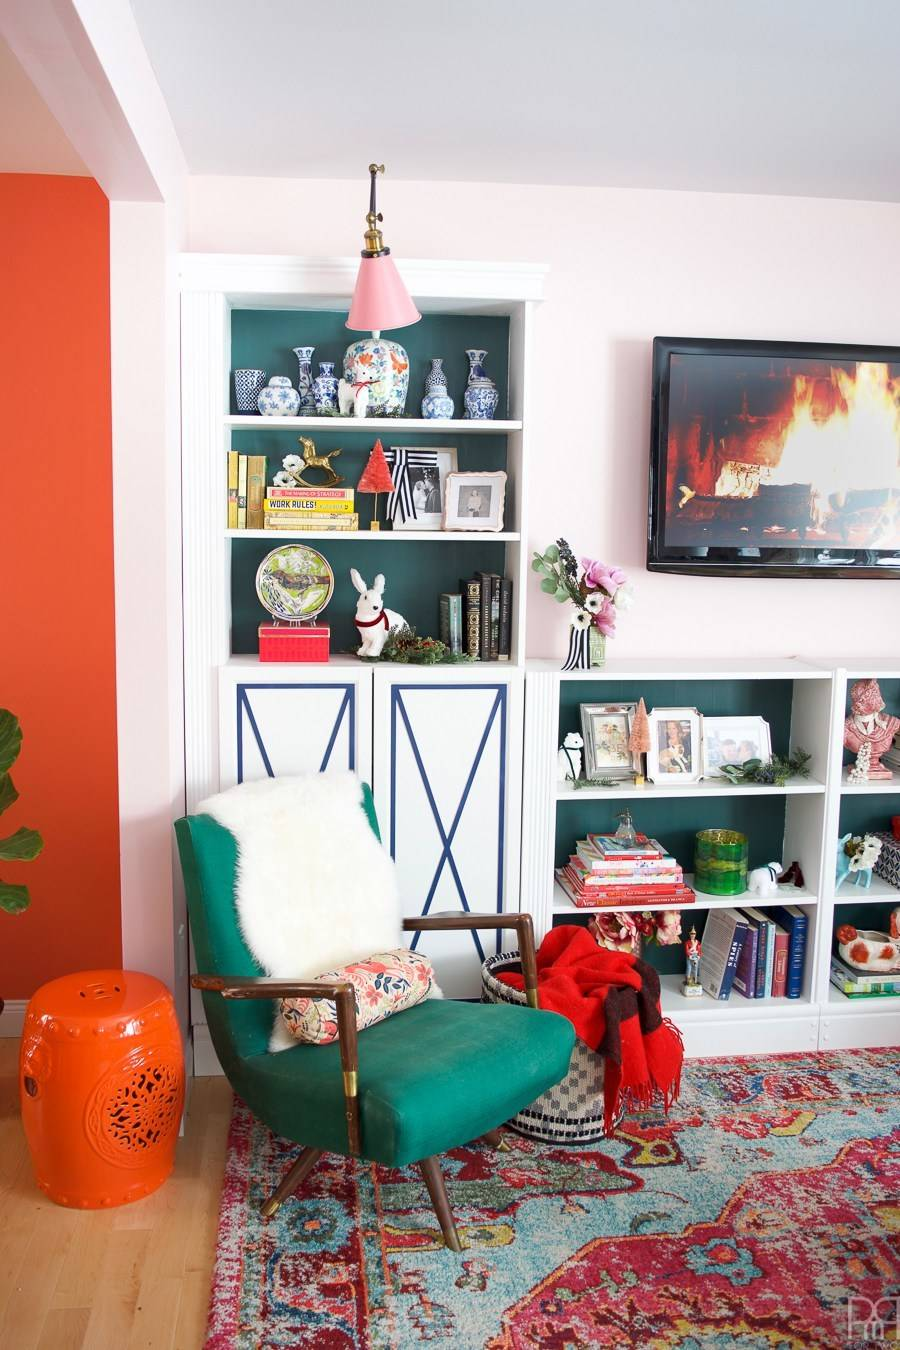 10 Fun Ways To Add Fresh Green Accents To Your Home